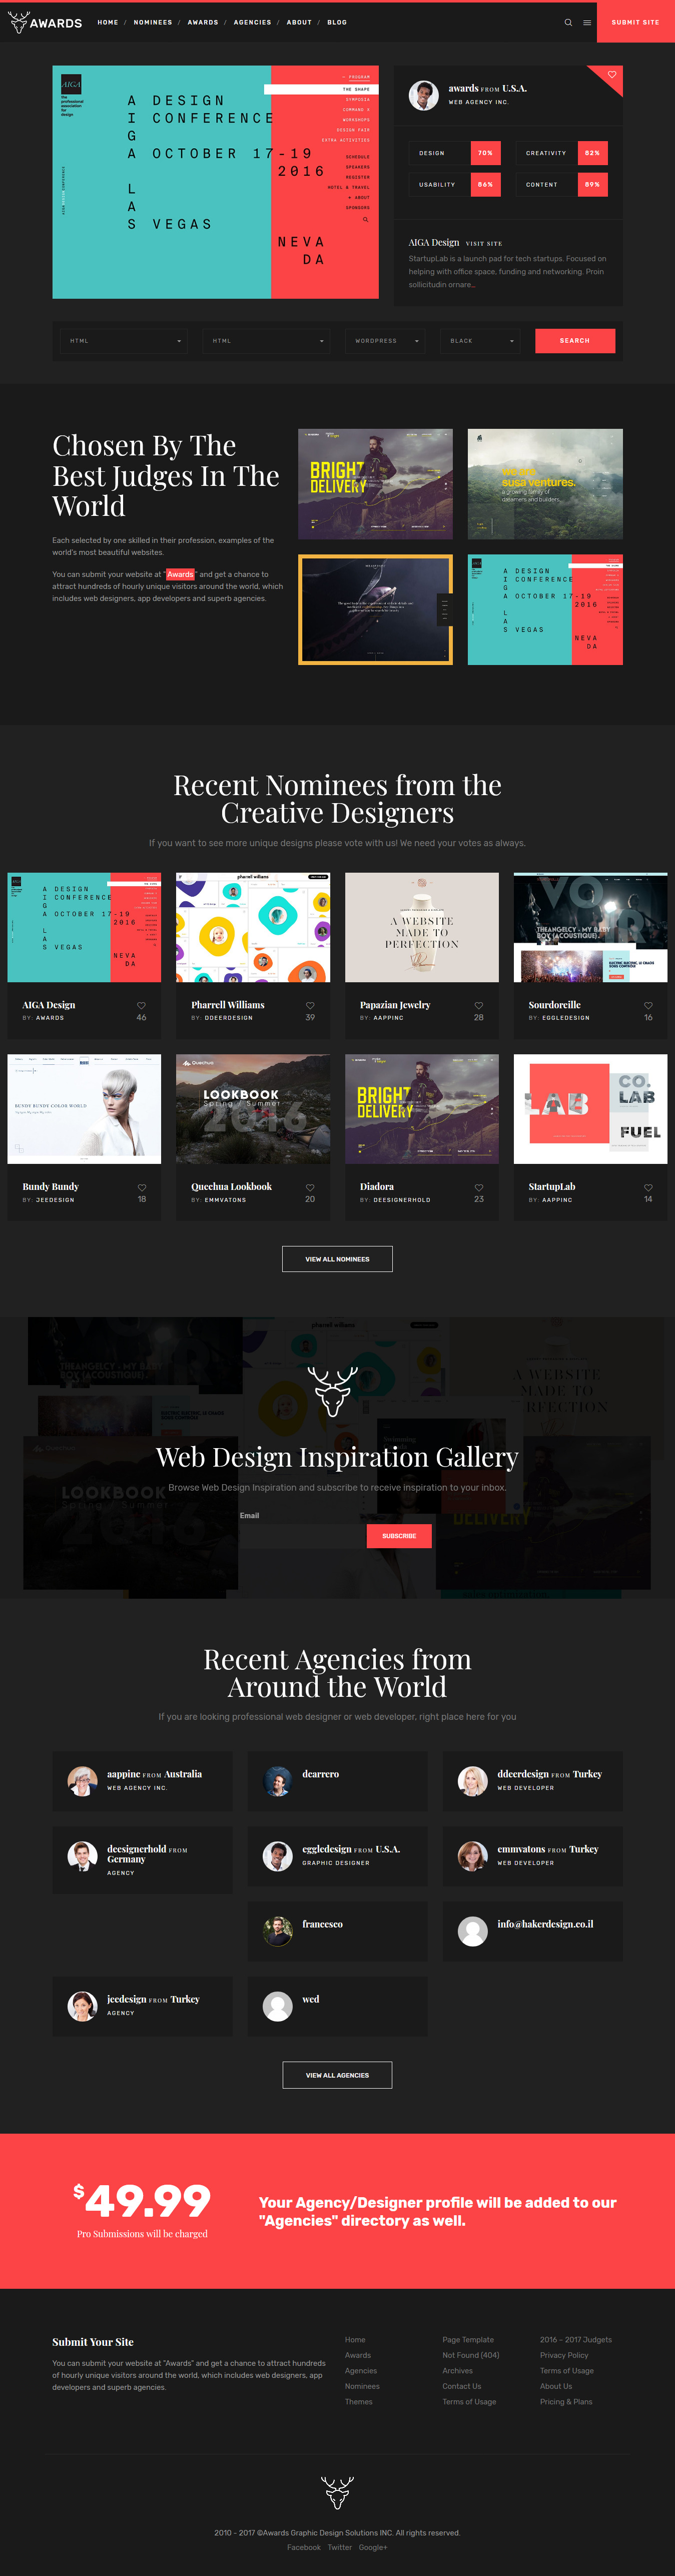 Awards - Best Premium Gallery WordPress Theme